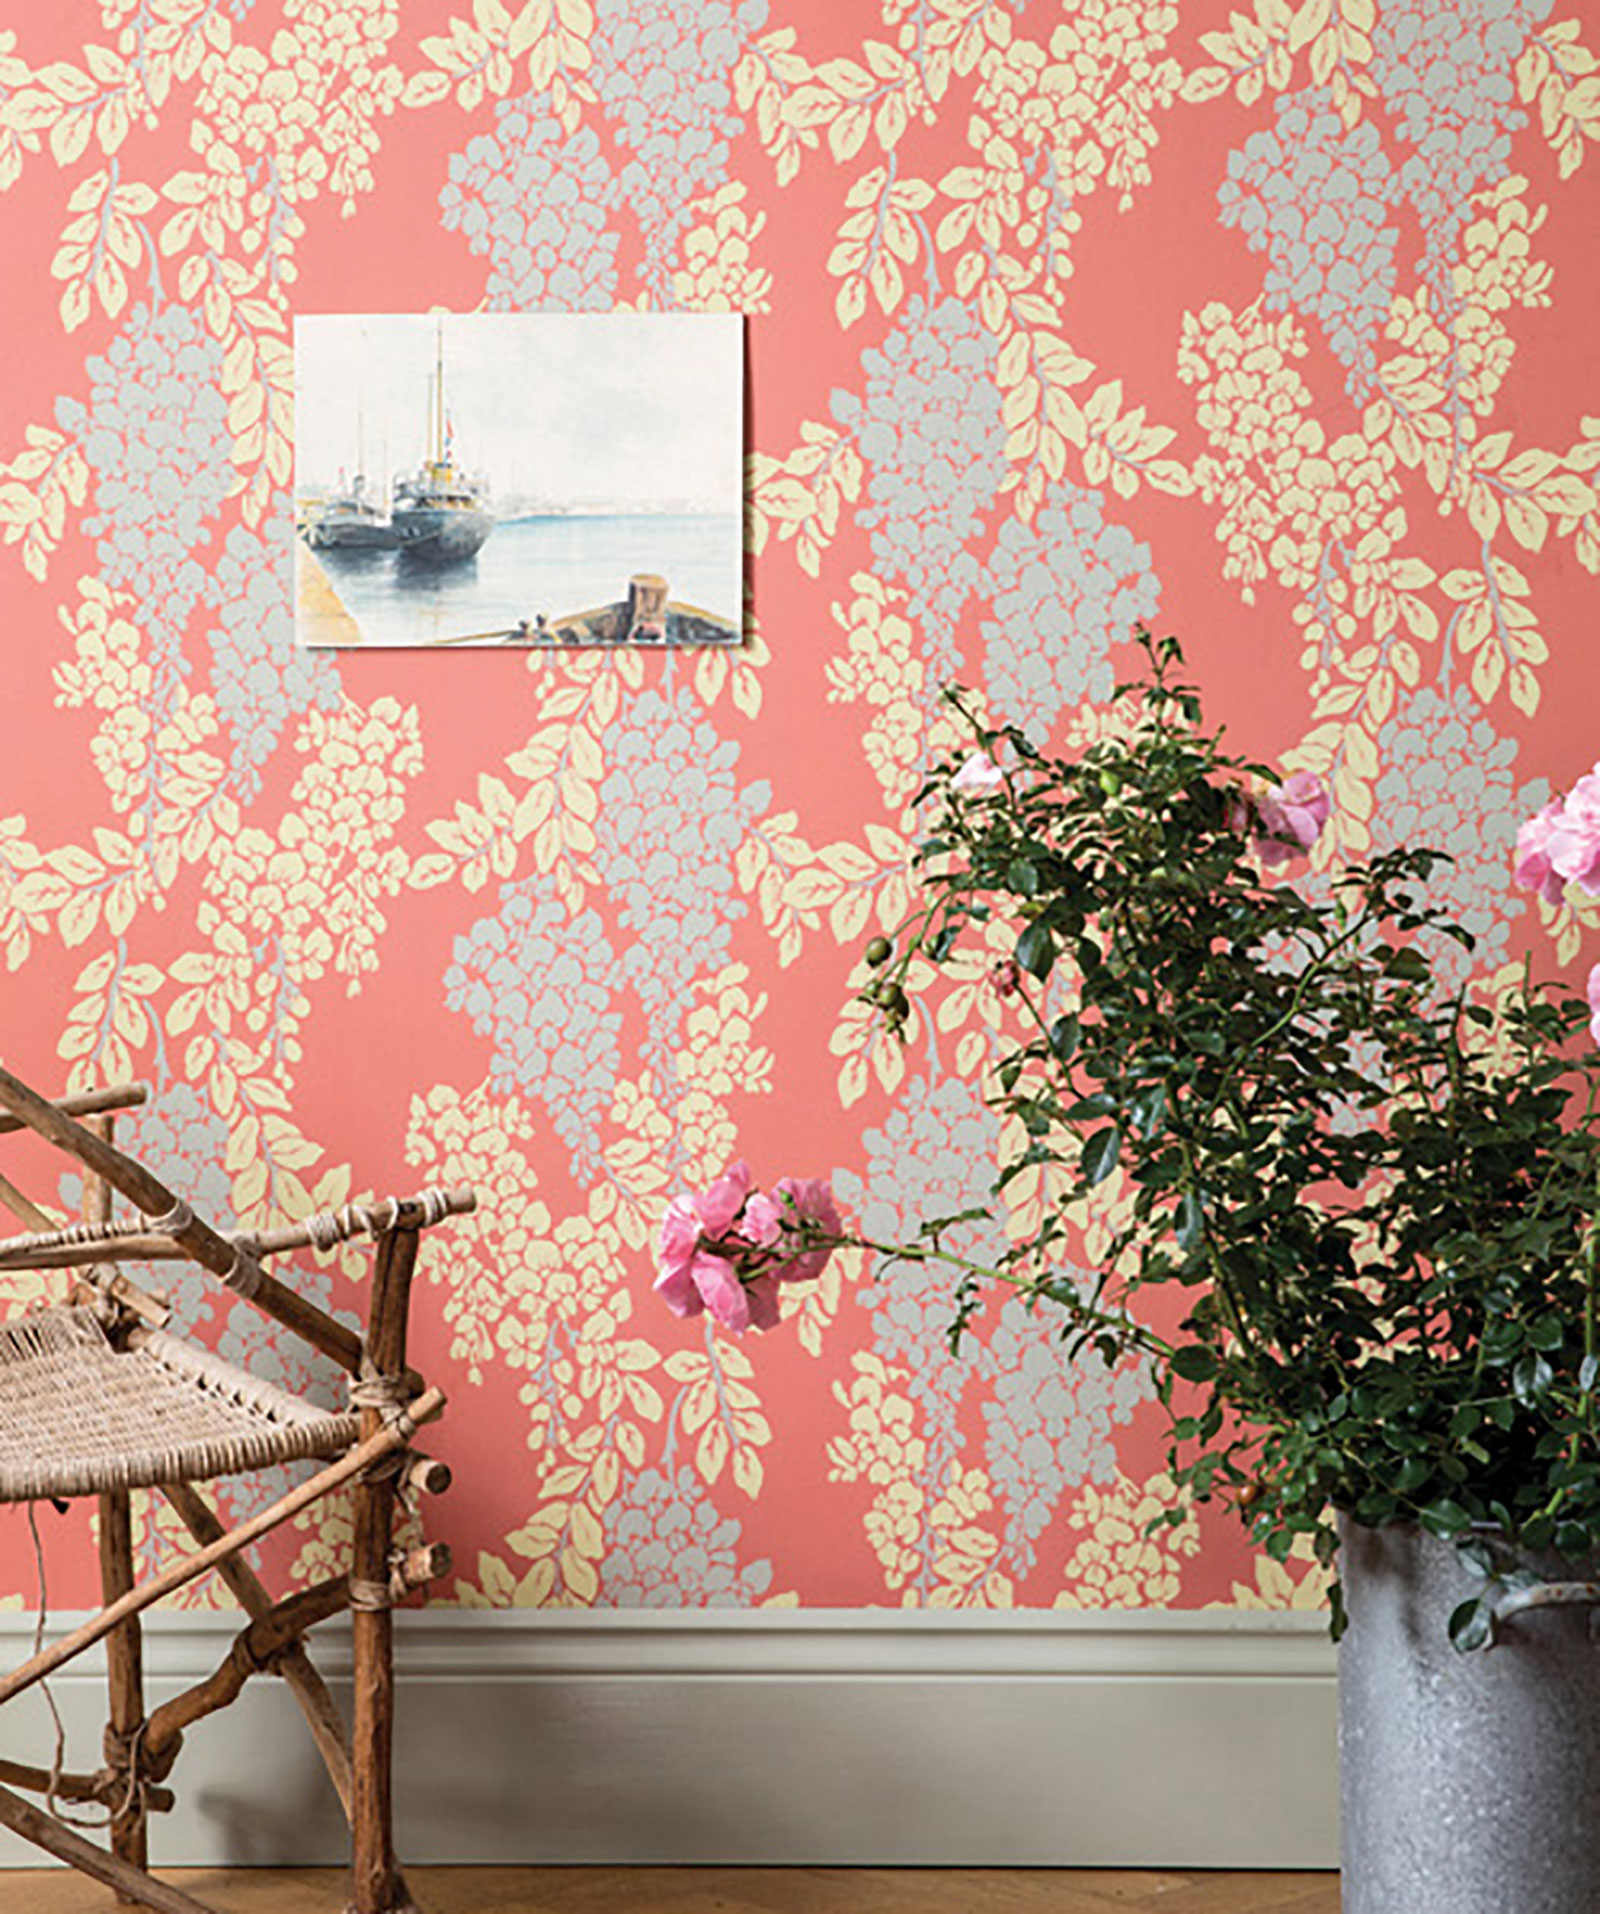 Wisteria coral wallpaper by Farrow & Ball